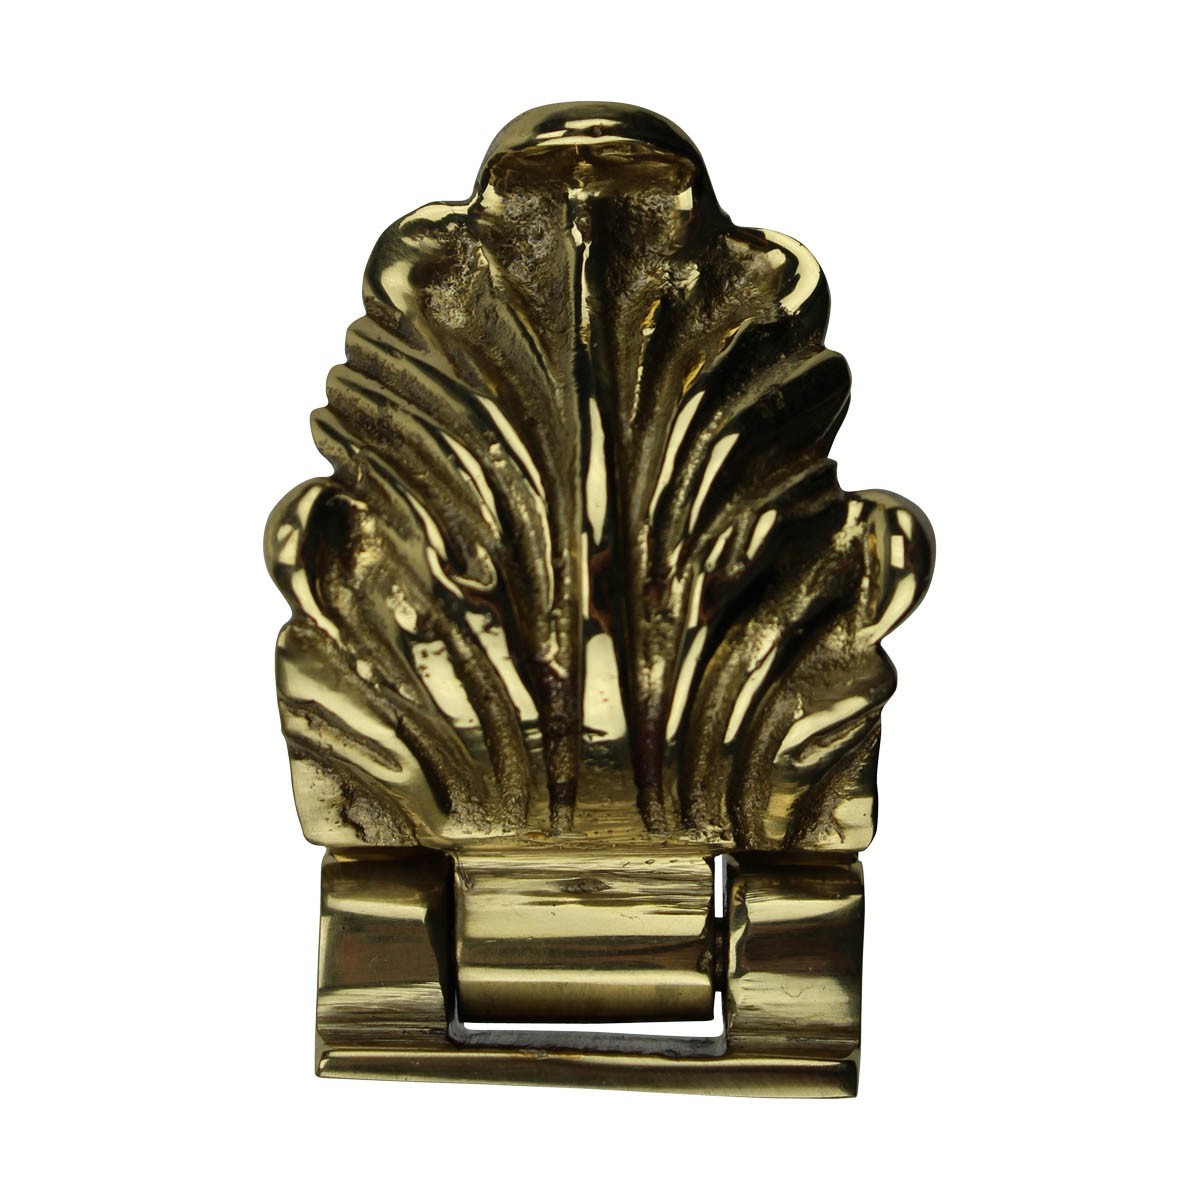 Decorative Cast Brass Sash Lift For Window | Renovator's Supply